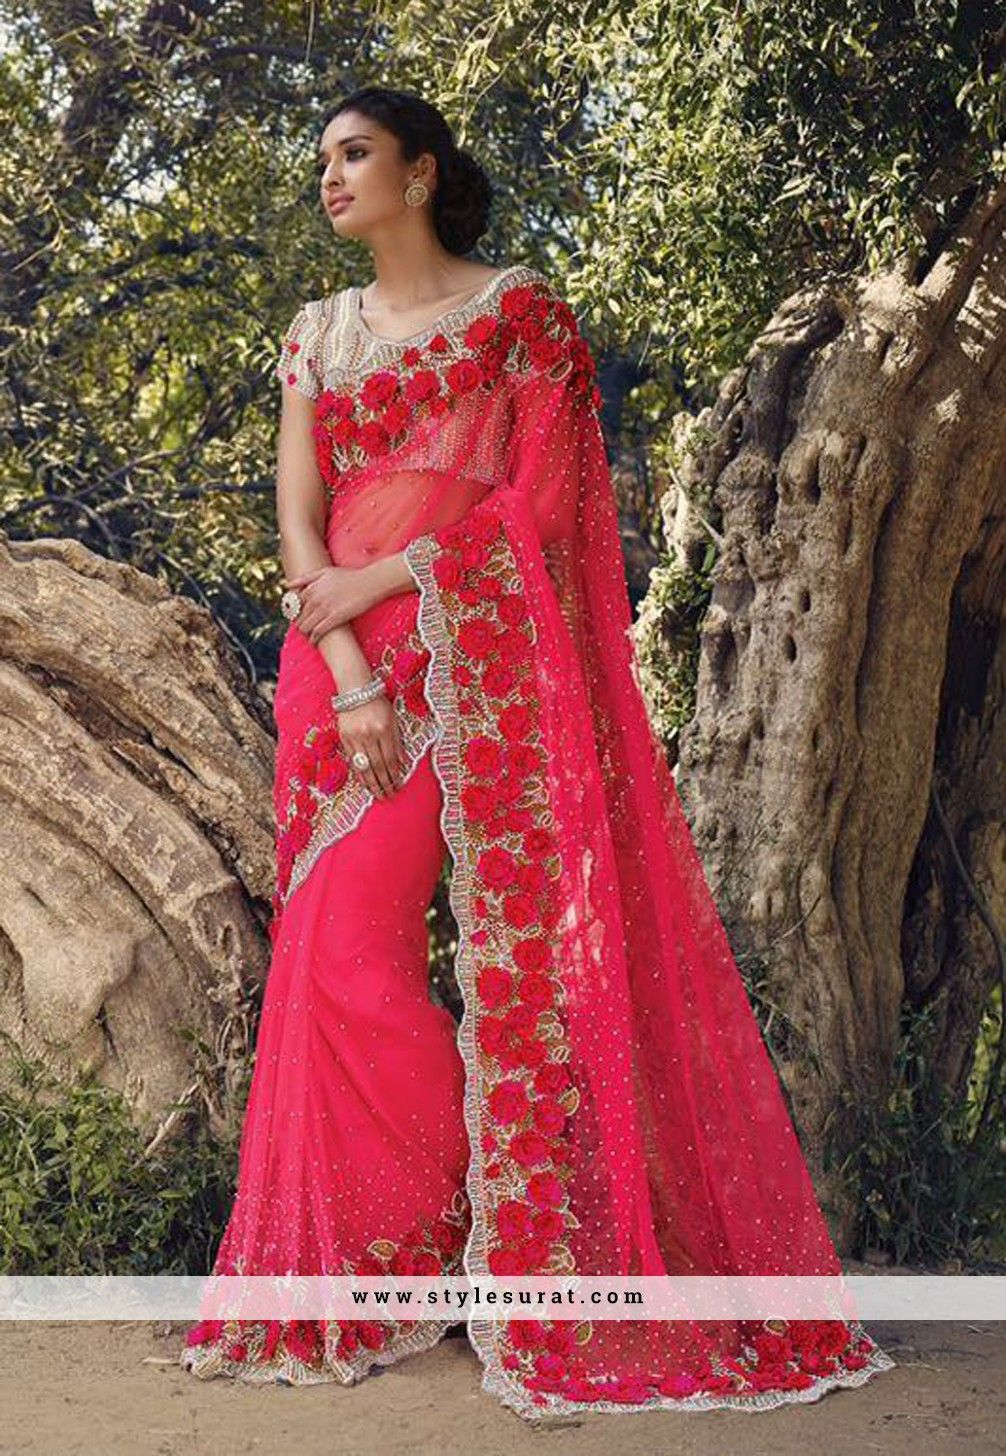 Bewitching Red Color Net Fabric With Mindblowing Rose Work